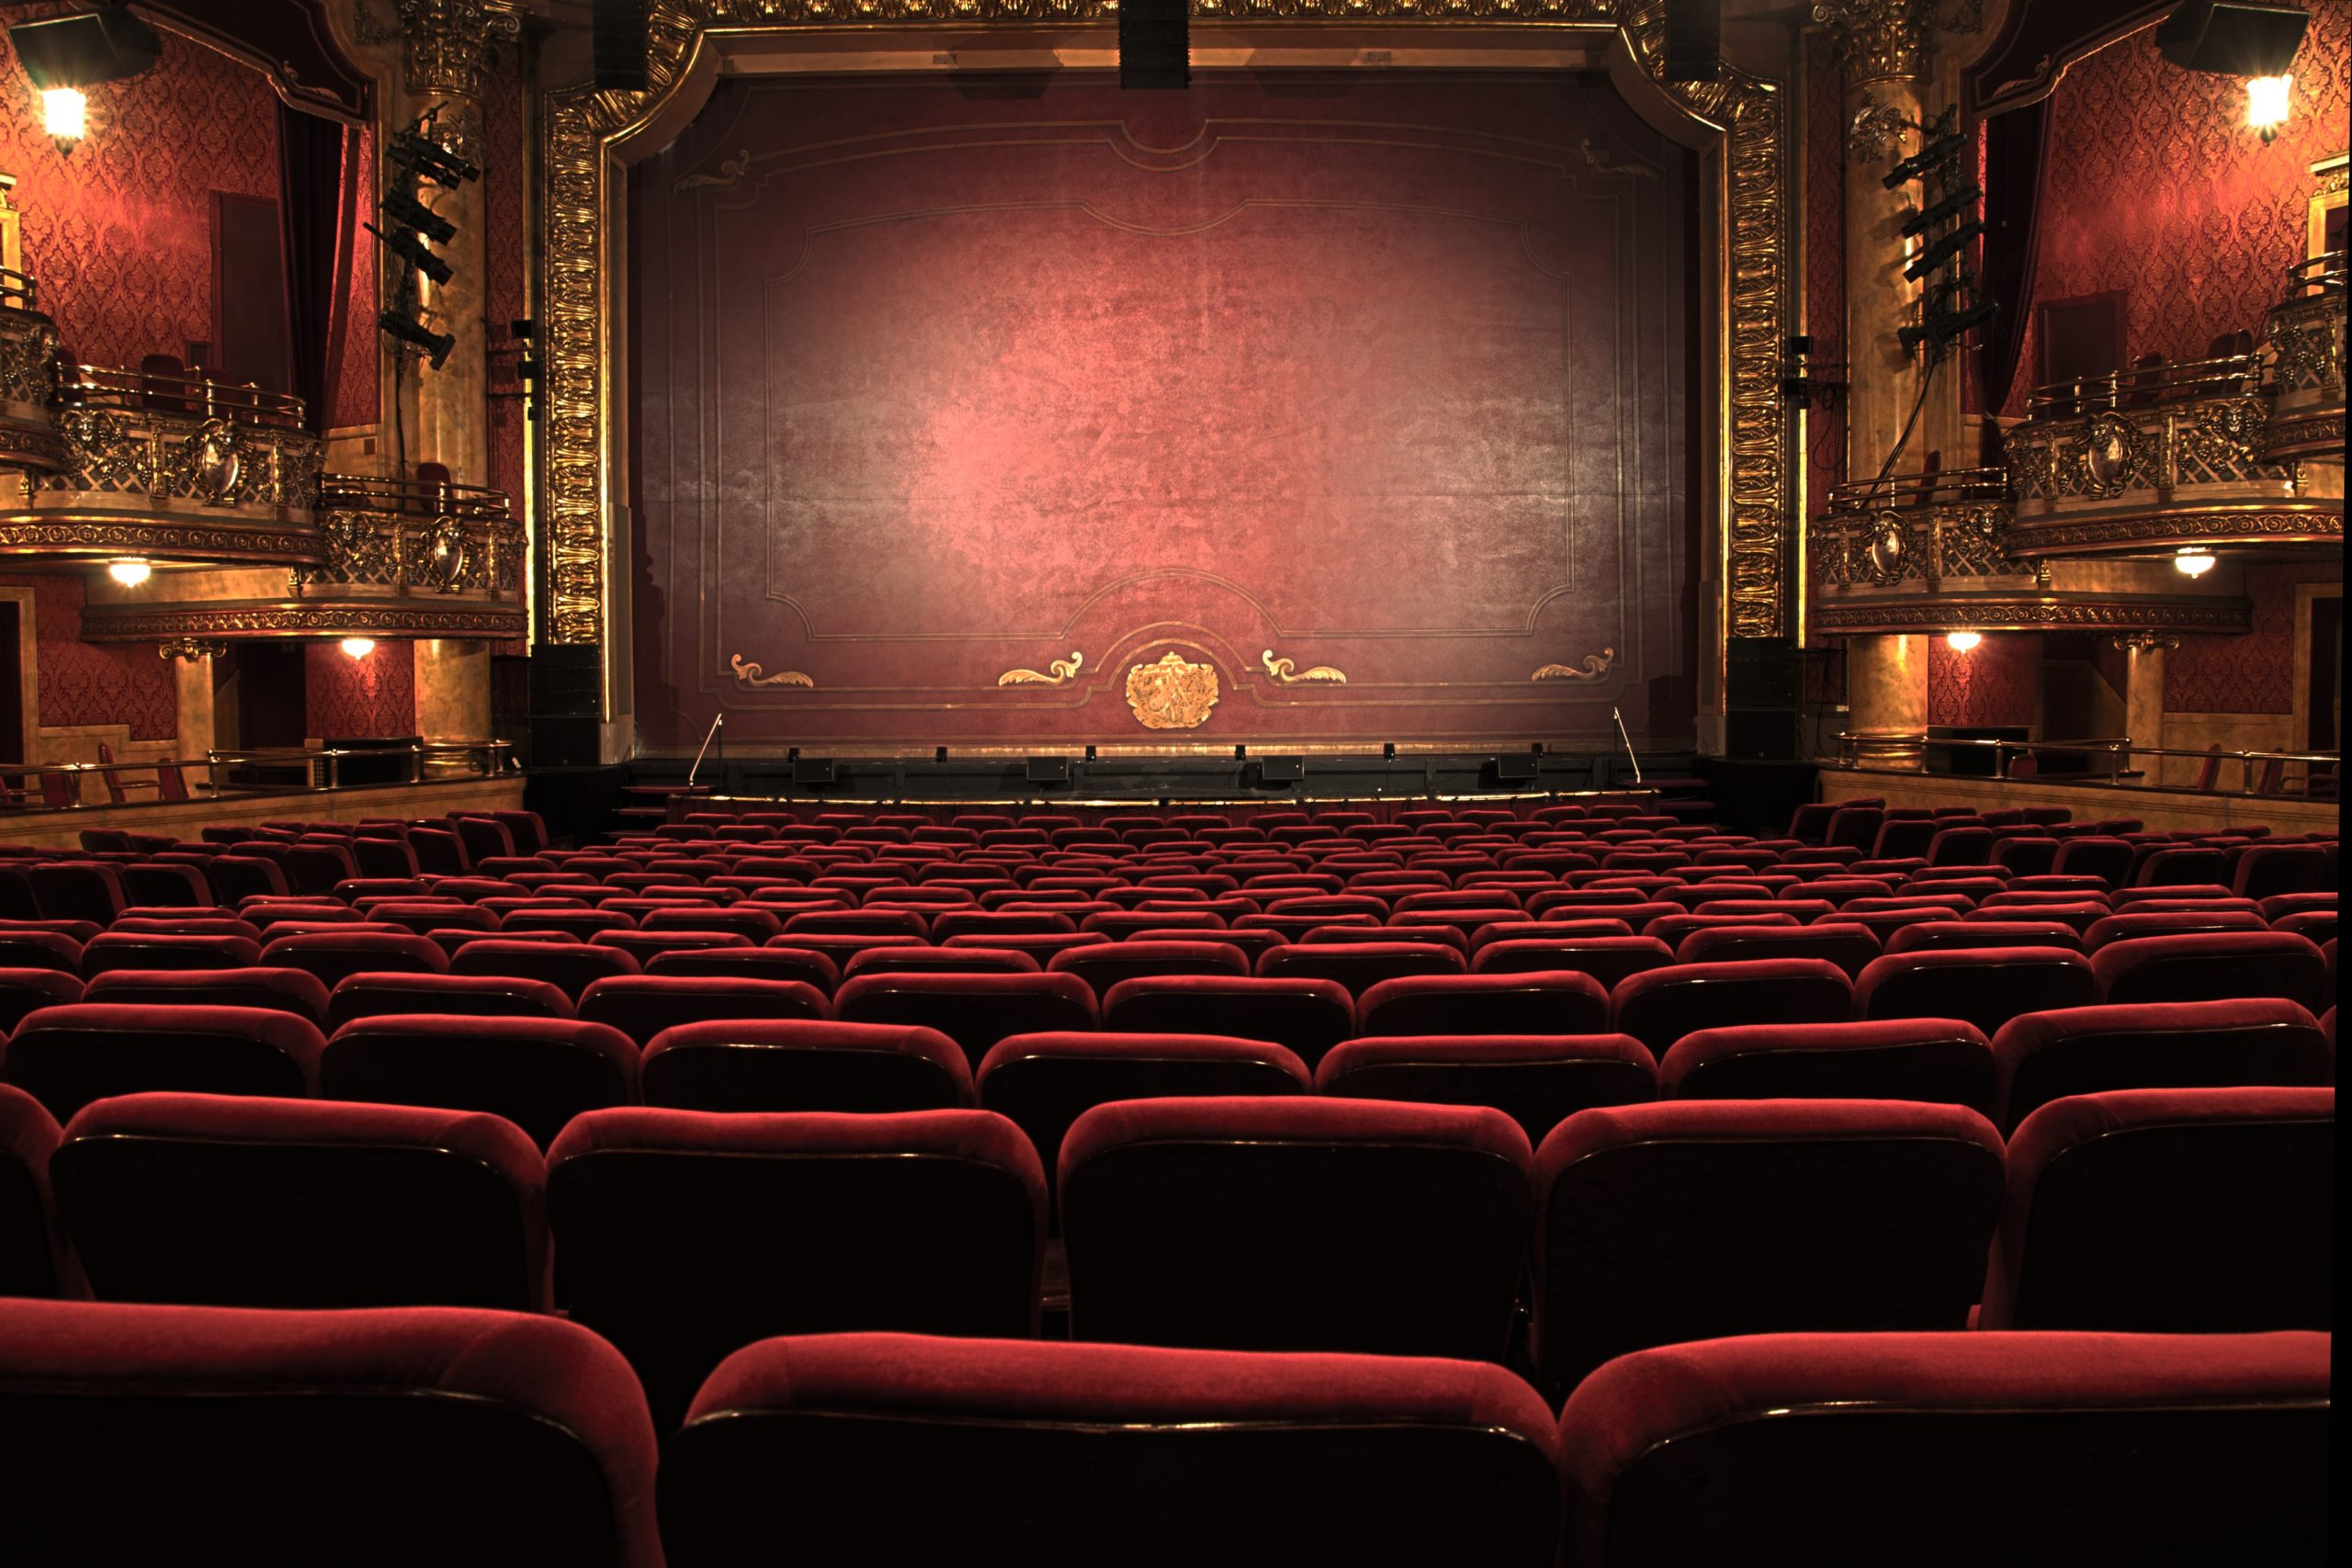 photo of an empty, old theatre. Red chairs, red walls, golden rims